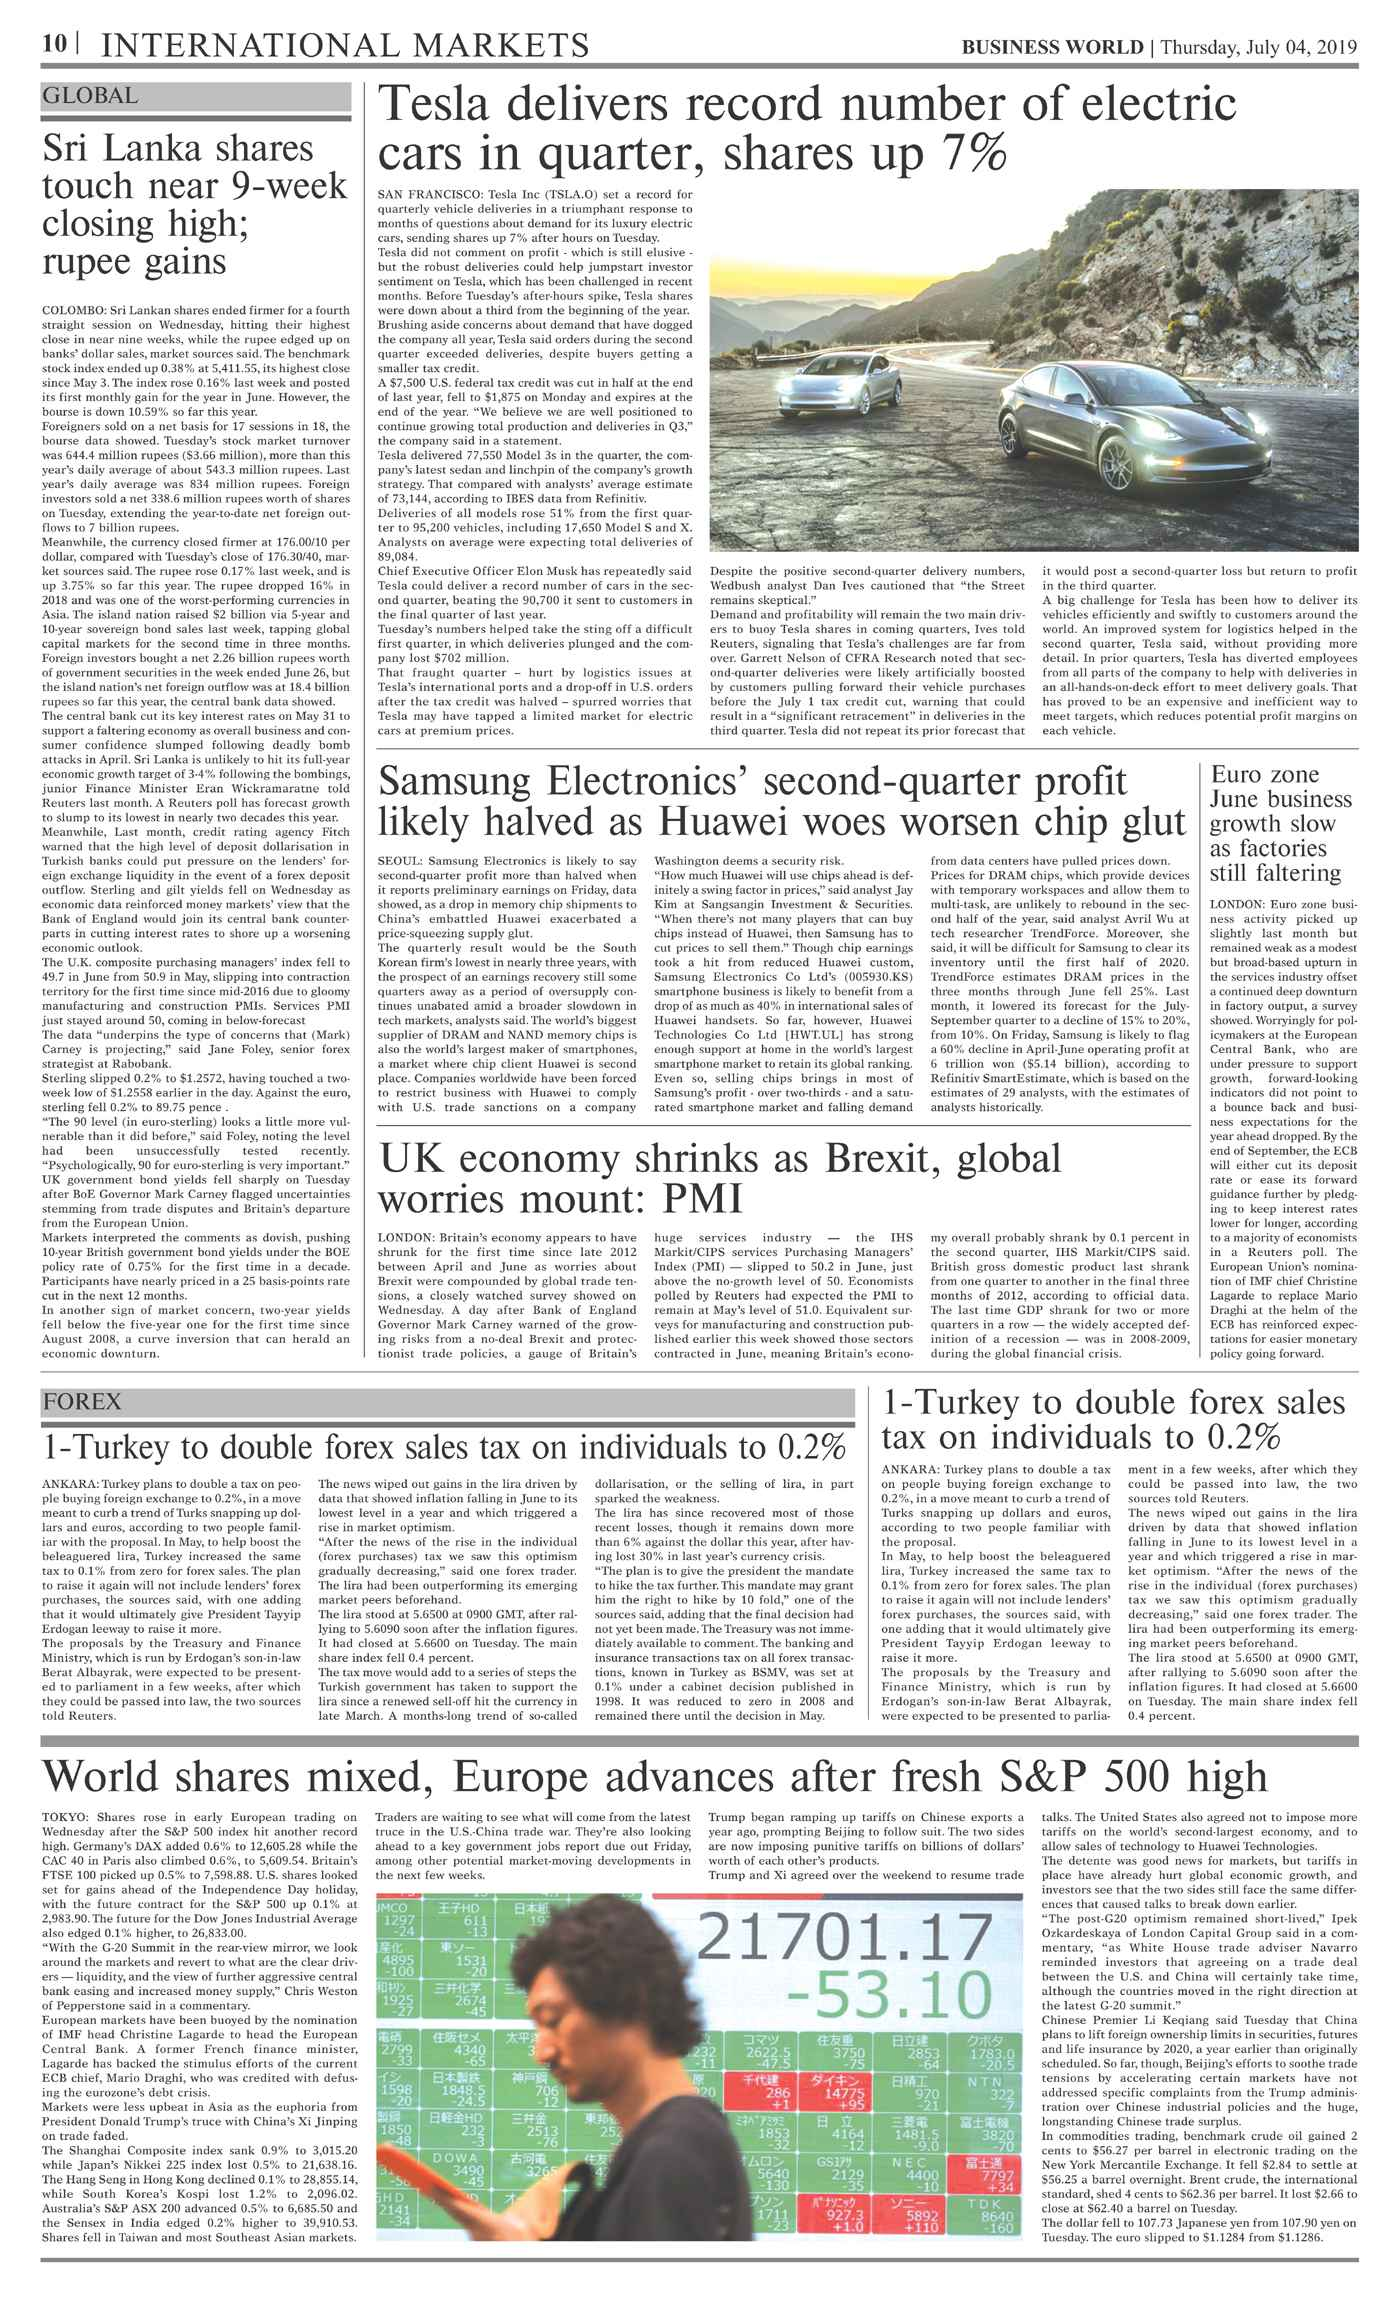 Daily Business World E-Paper 4th July 2019 - Daily Business World